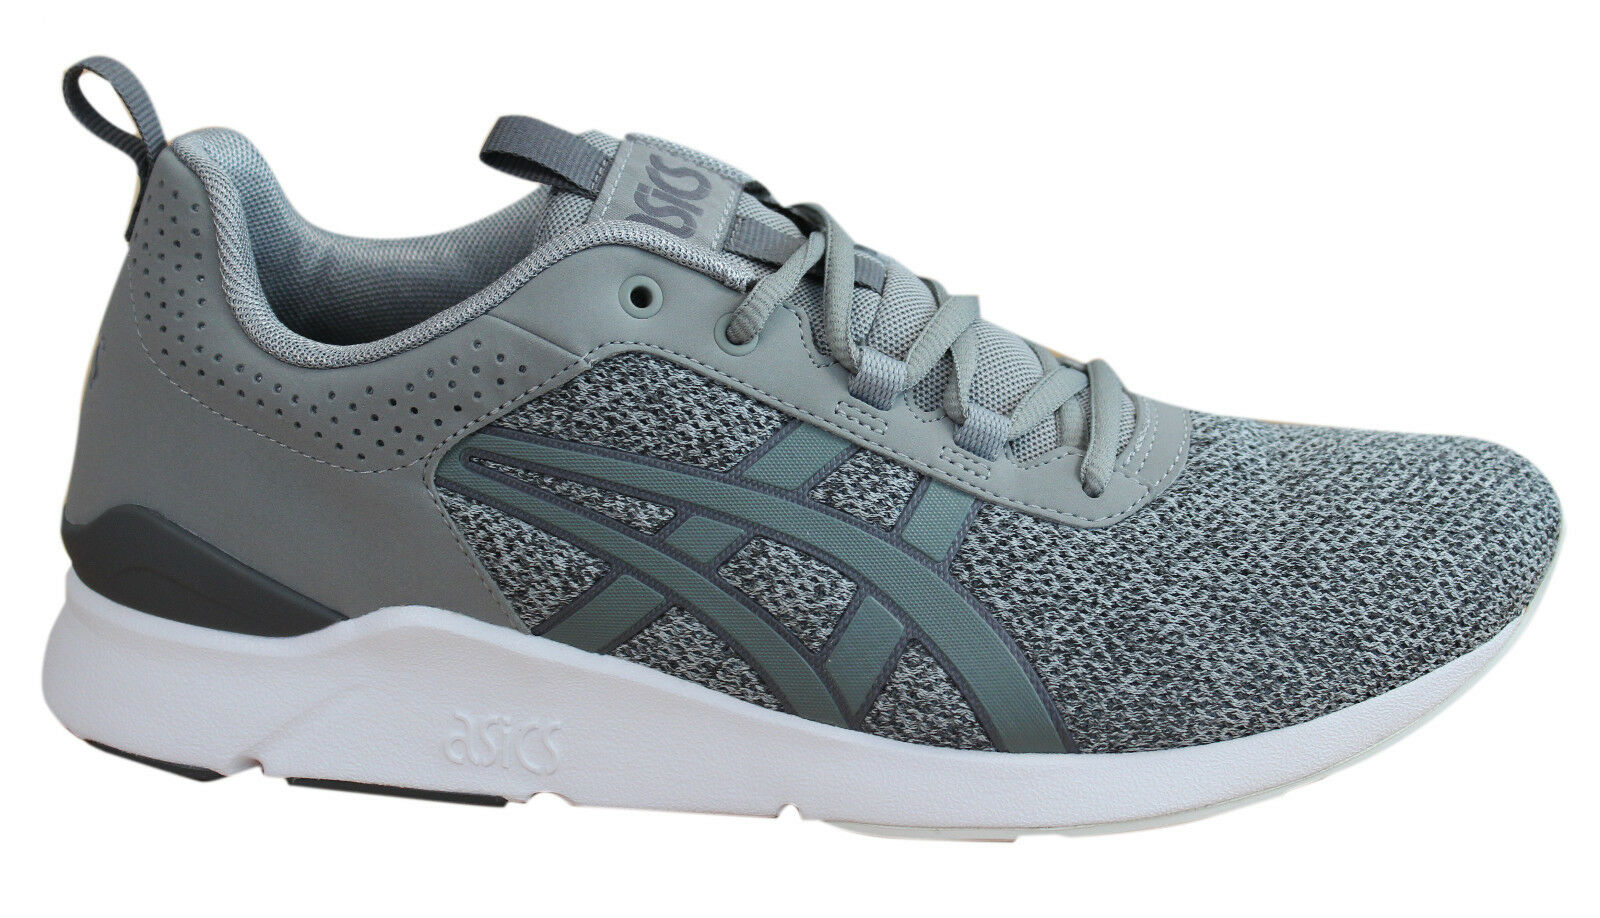 Bsics Gel-Lyte Runner Mens Trainers Lace Up Shoes Grey Textile HN6F2 1313 D41